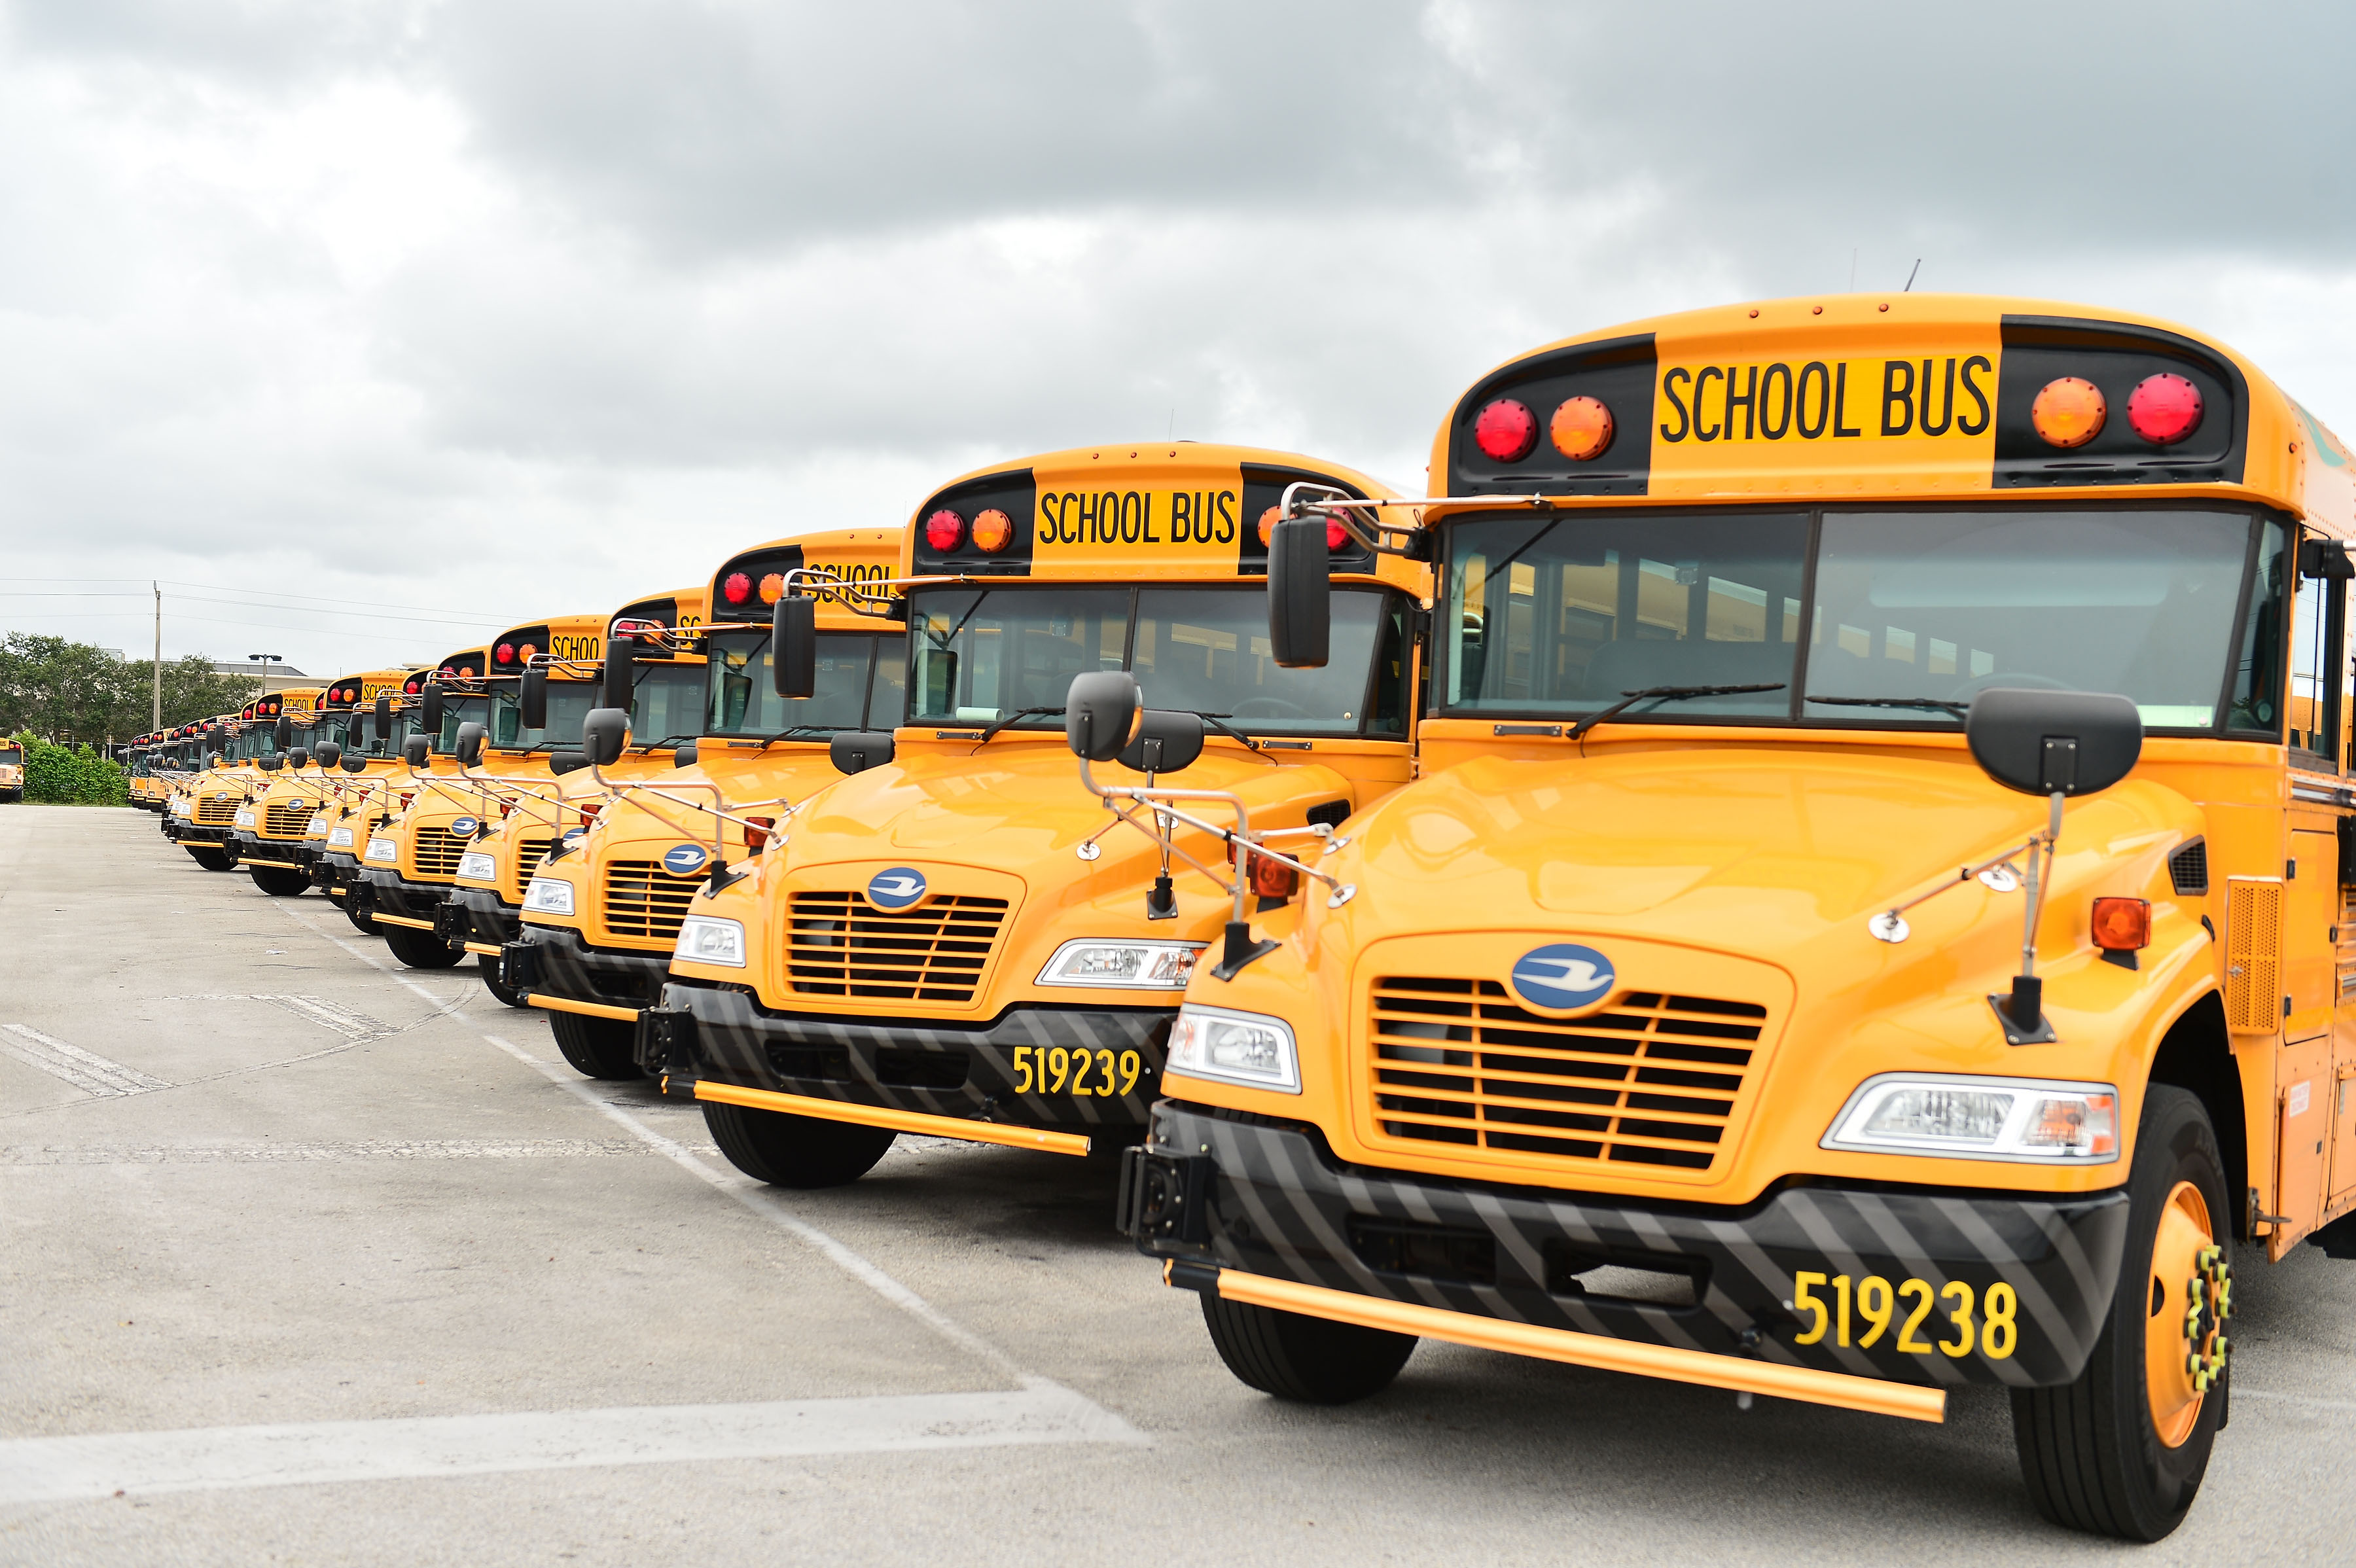 A fleet of Broward County school buses are parked in a lot on July 21 in Pembroke Pines, Florida.